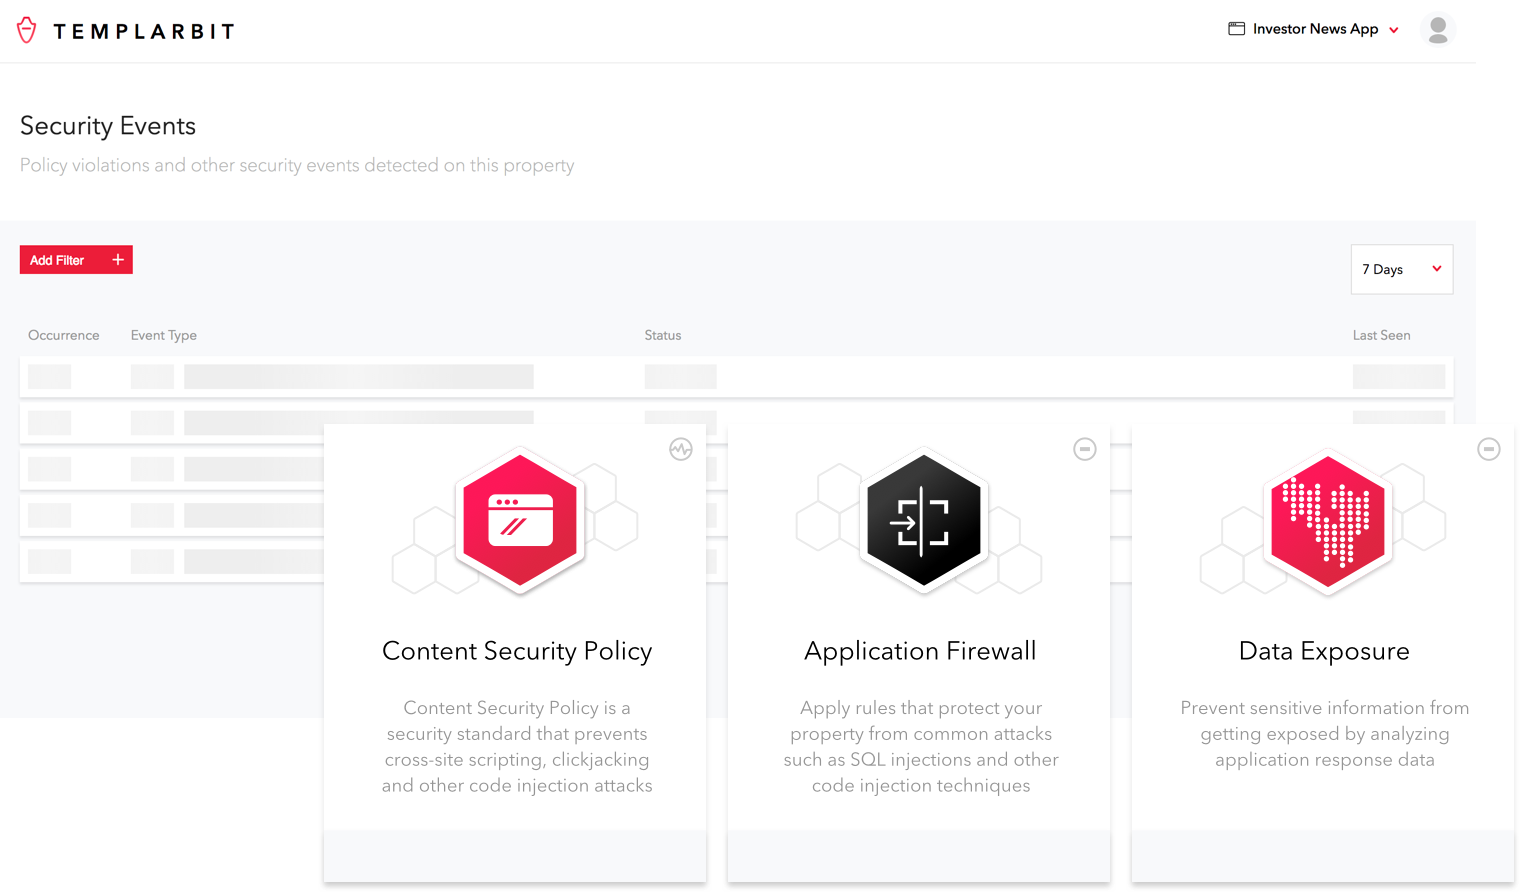 Image that shows security events in the Templarbit dashboard